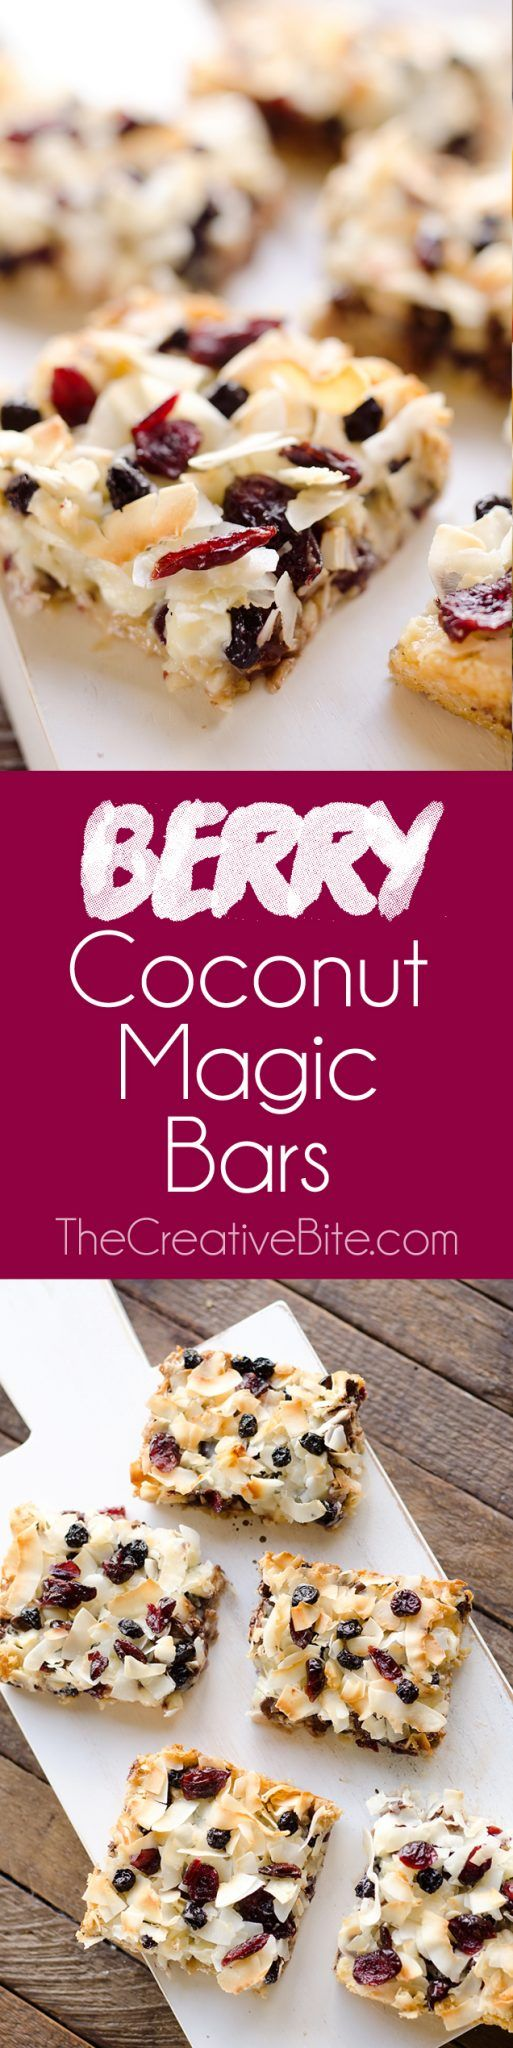 Berry Coconut Magic Bars are amazingly easy to whip together and have the great flavors of chocolate and dried berries for a fun twist on a…